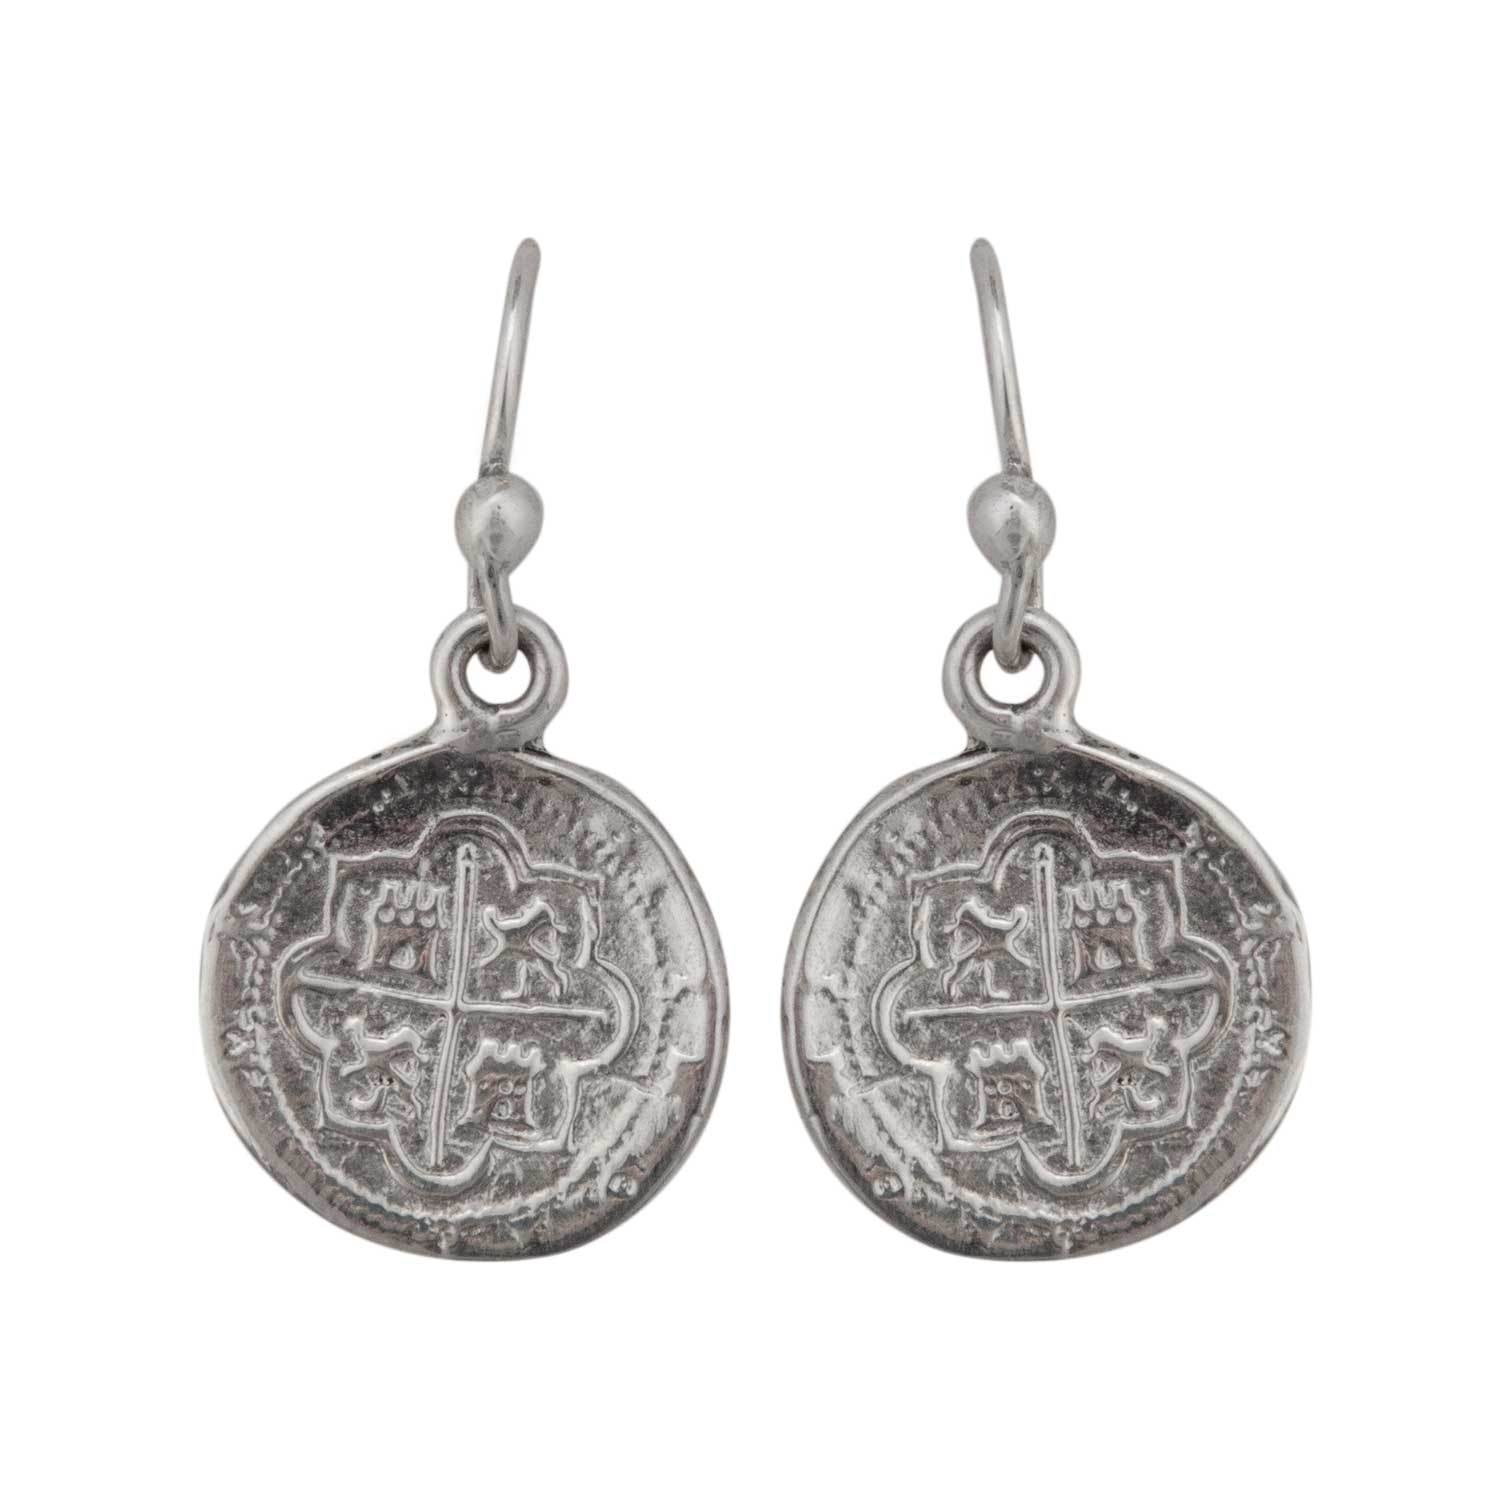 Sterling Silver Replica Spanish Coin Drop Earrings | Charles Albert Jewelry